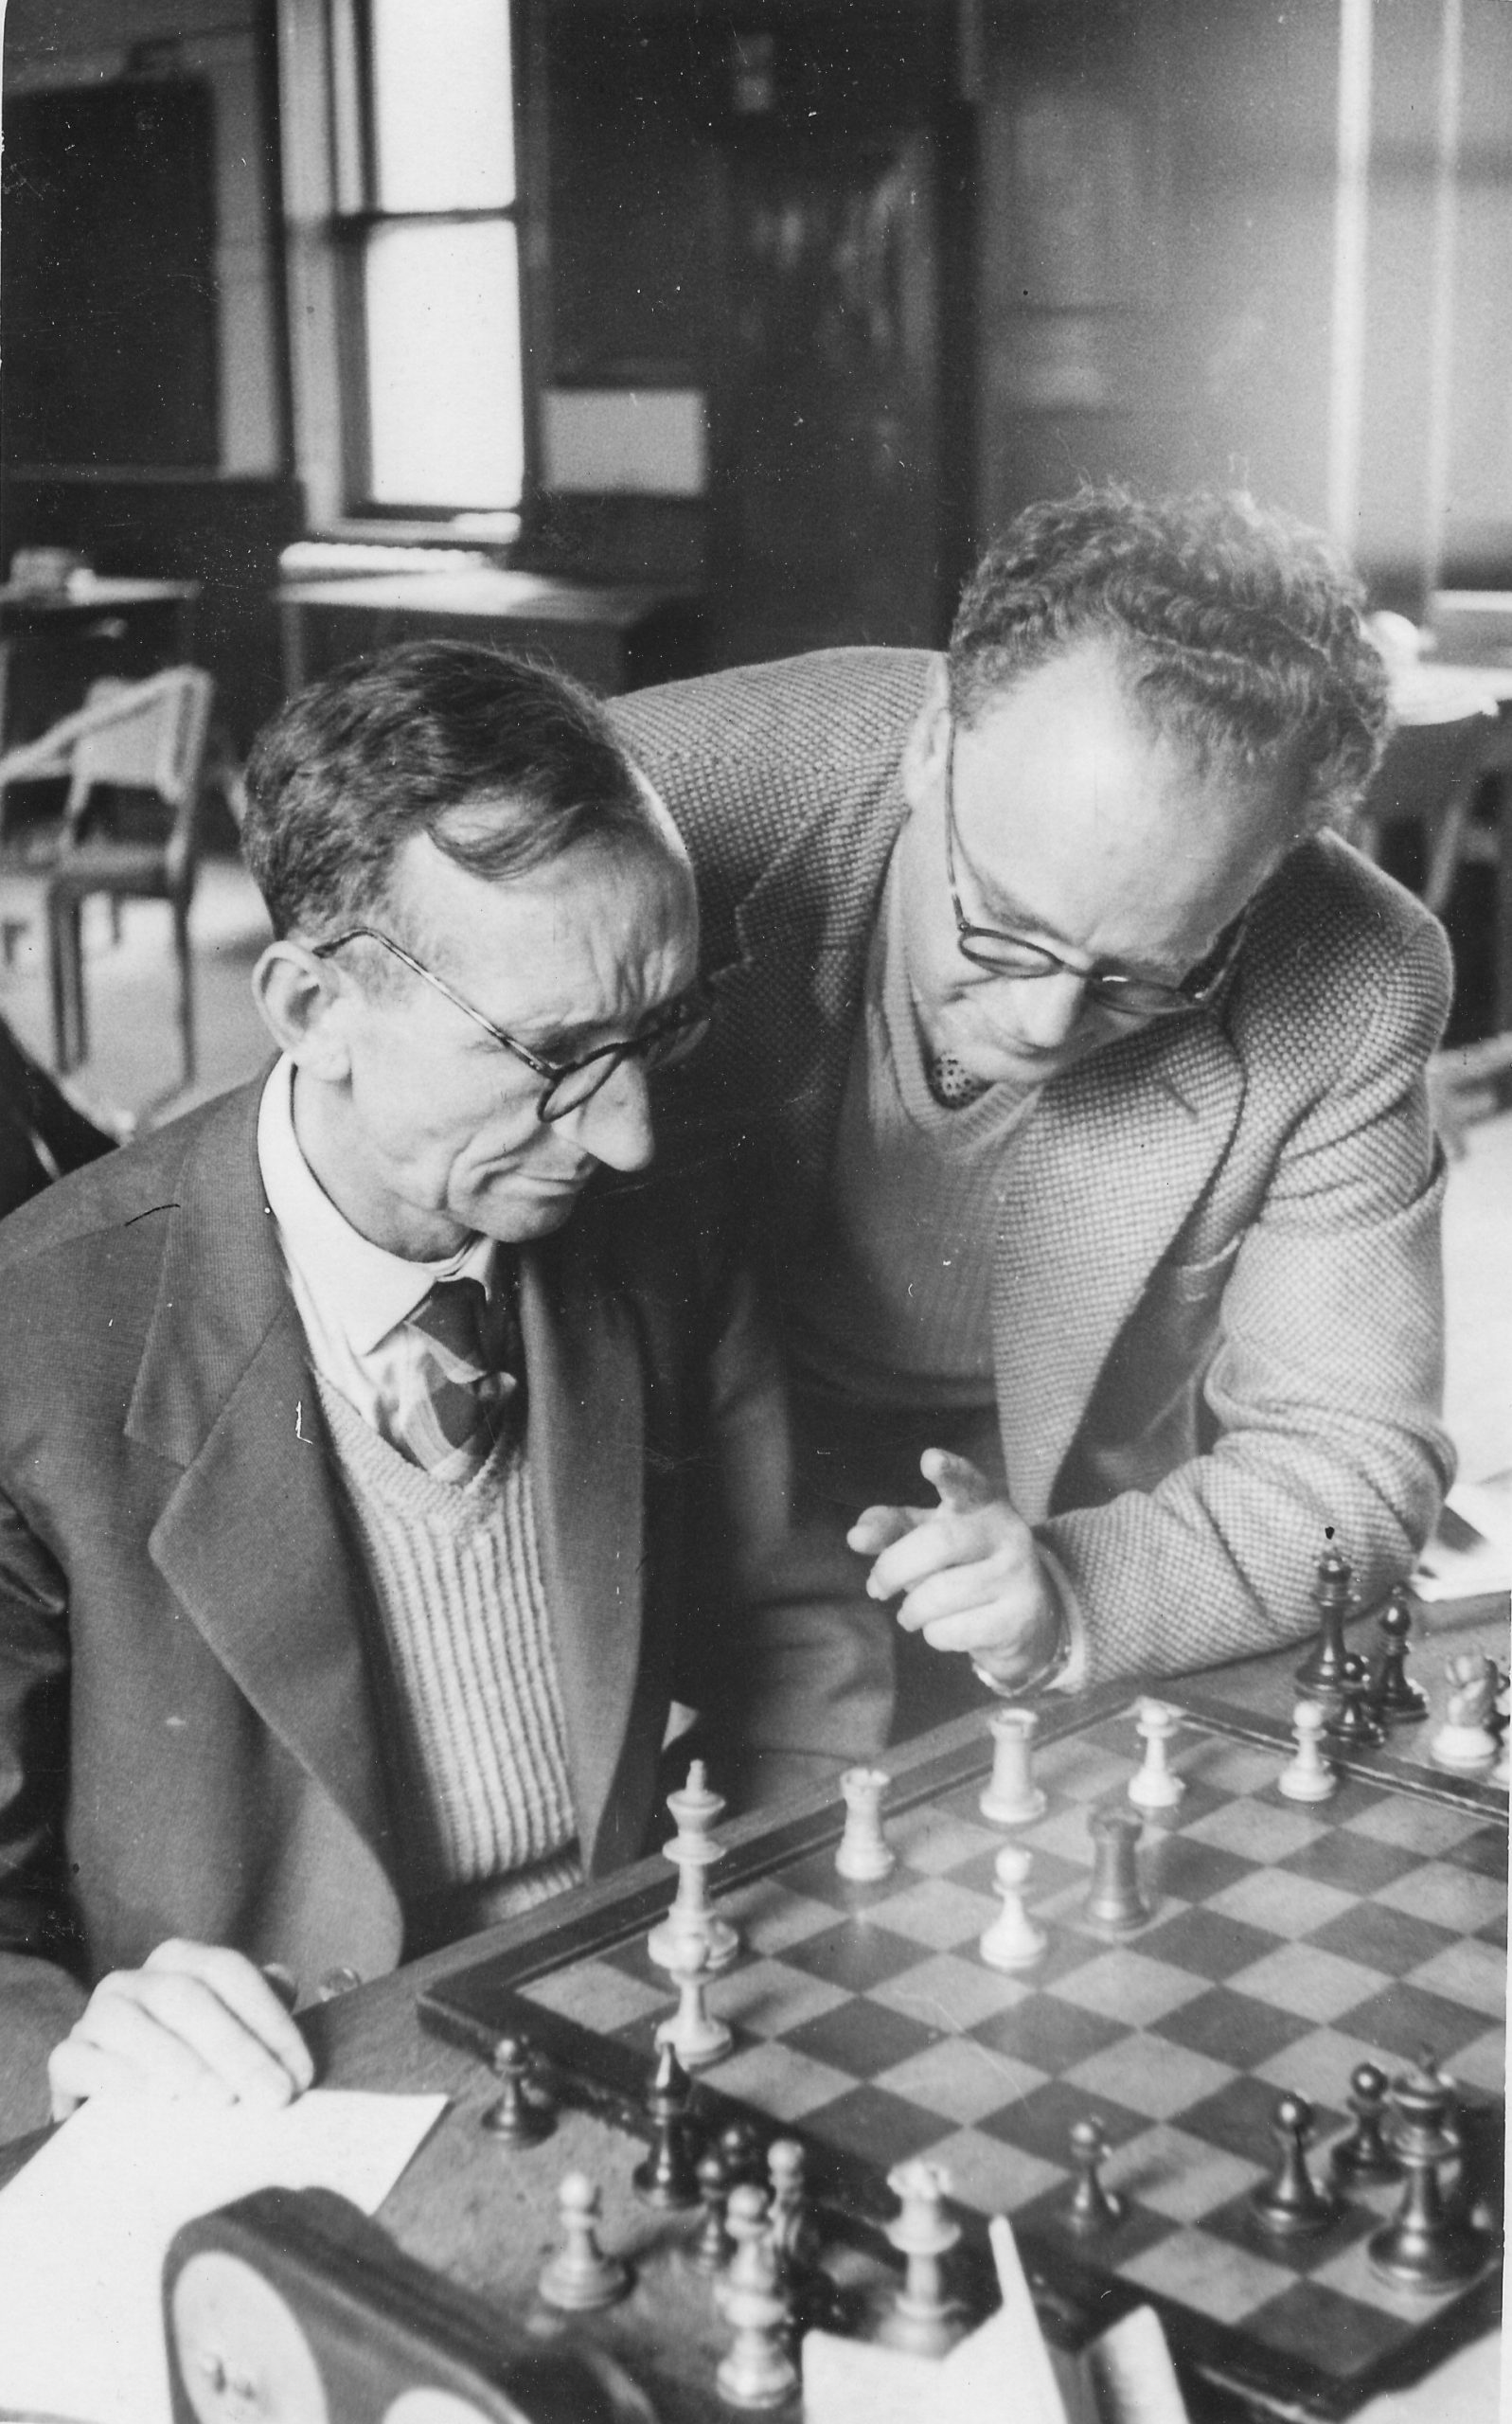 Brian analysing with Irish team mate, Wolfgang Heidenfeld